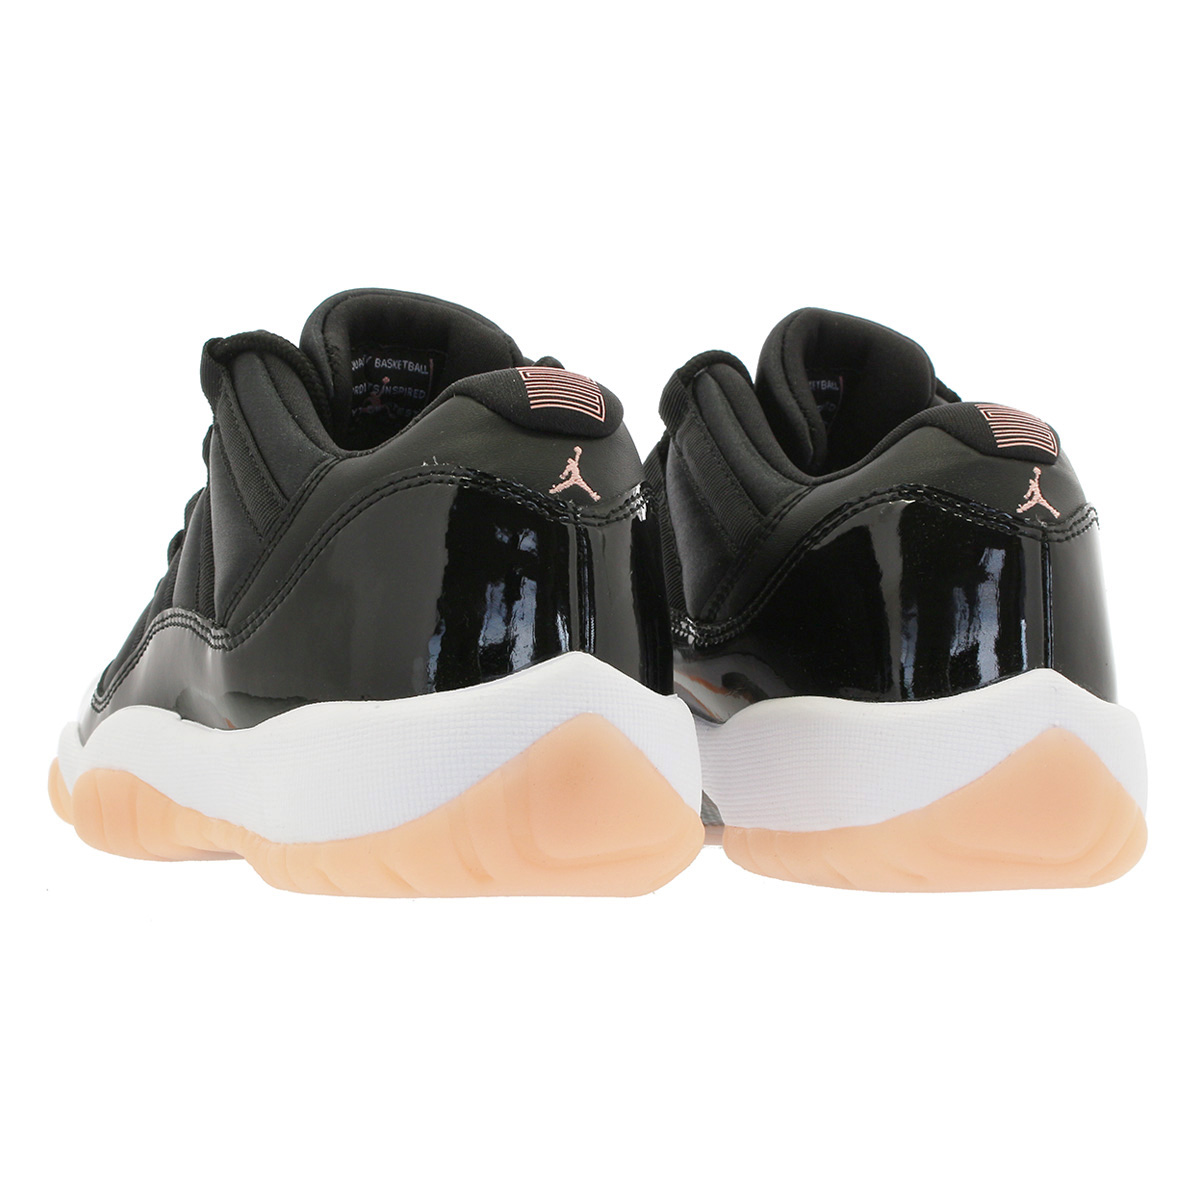 5af85dc2dc25 NIKE AIR JORDAN 11 RETRO LOW GG Nike Air Jordan 11 nostalgic low BG BLACK BLEACHED  CORAL WHITE 580